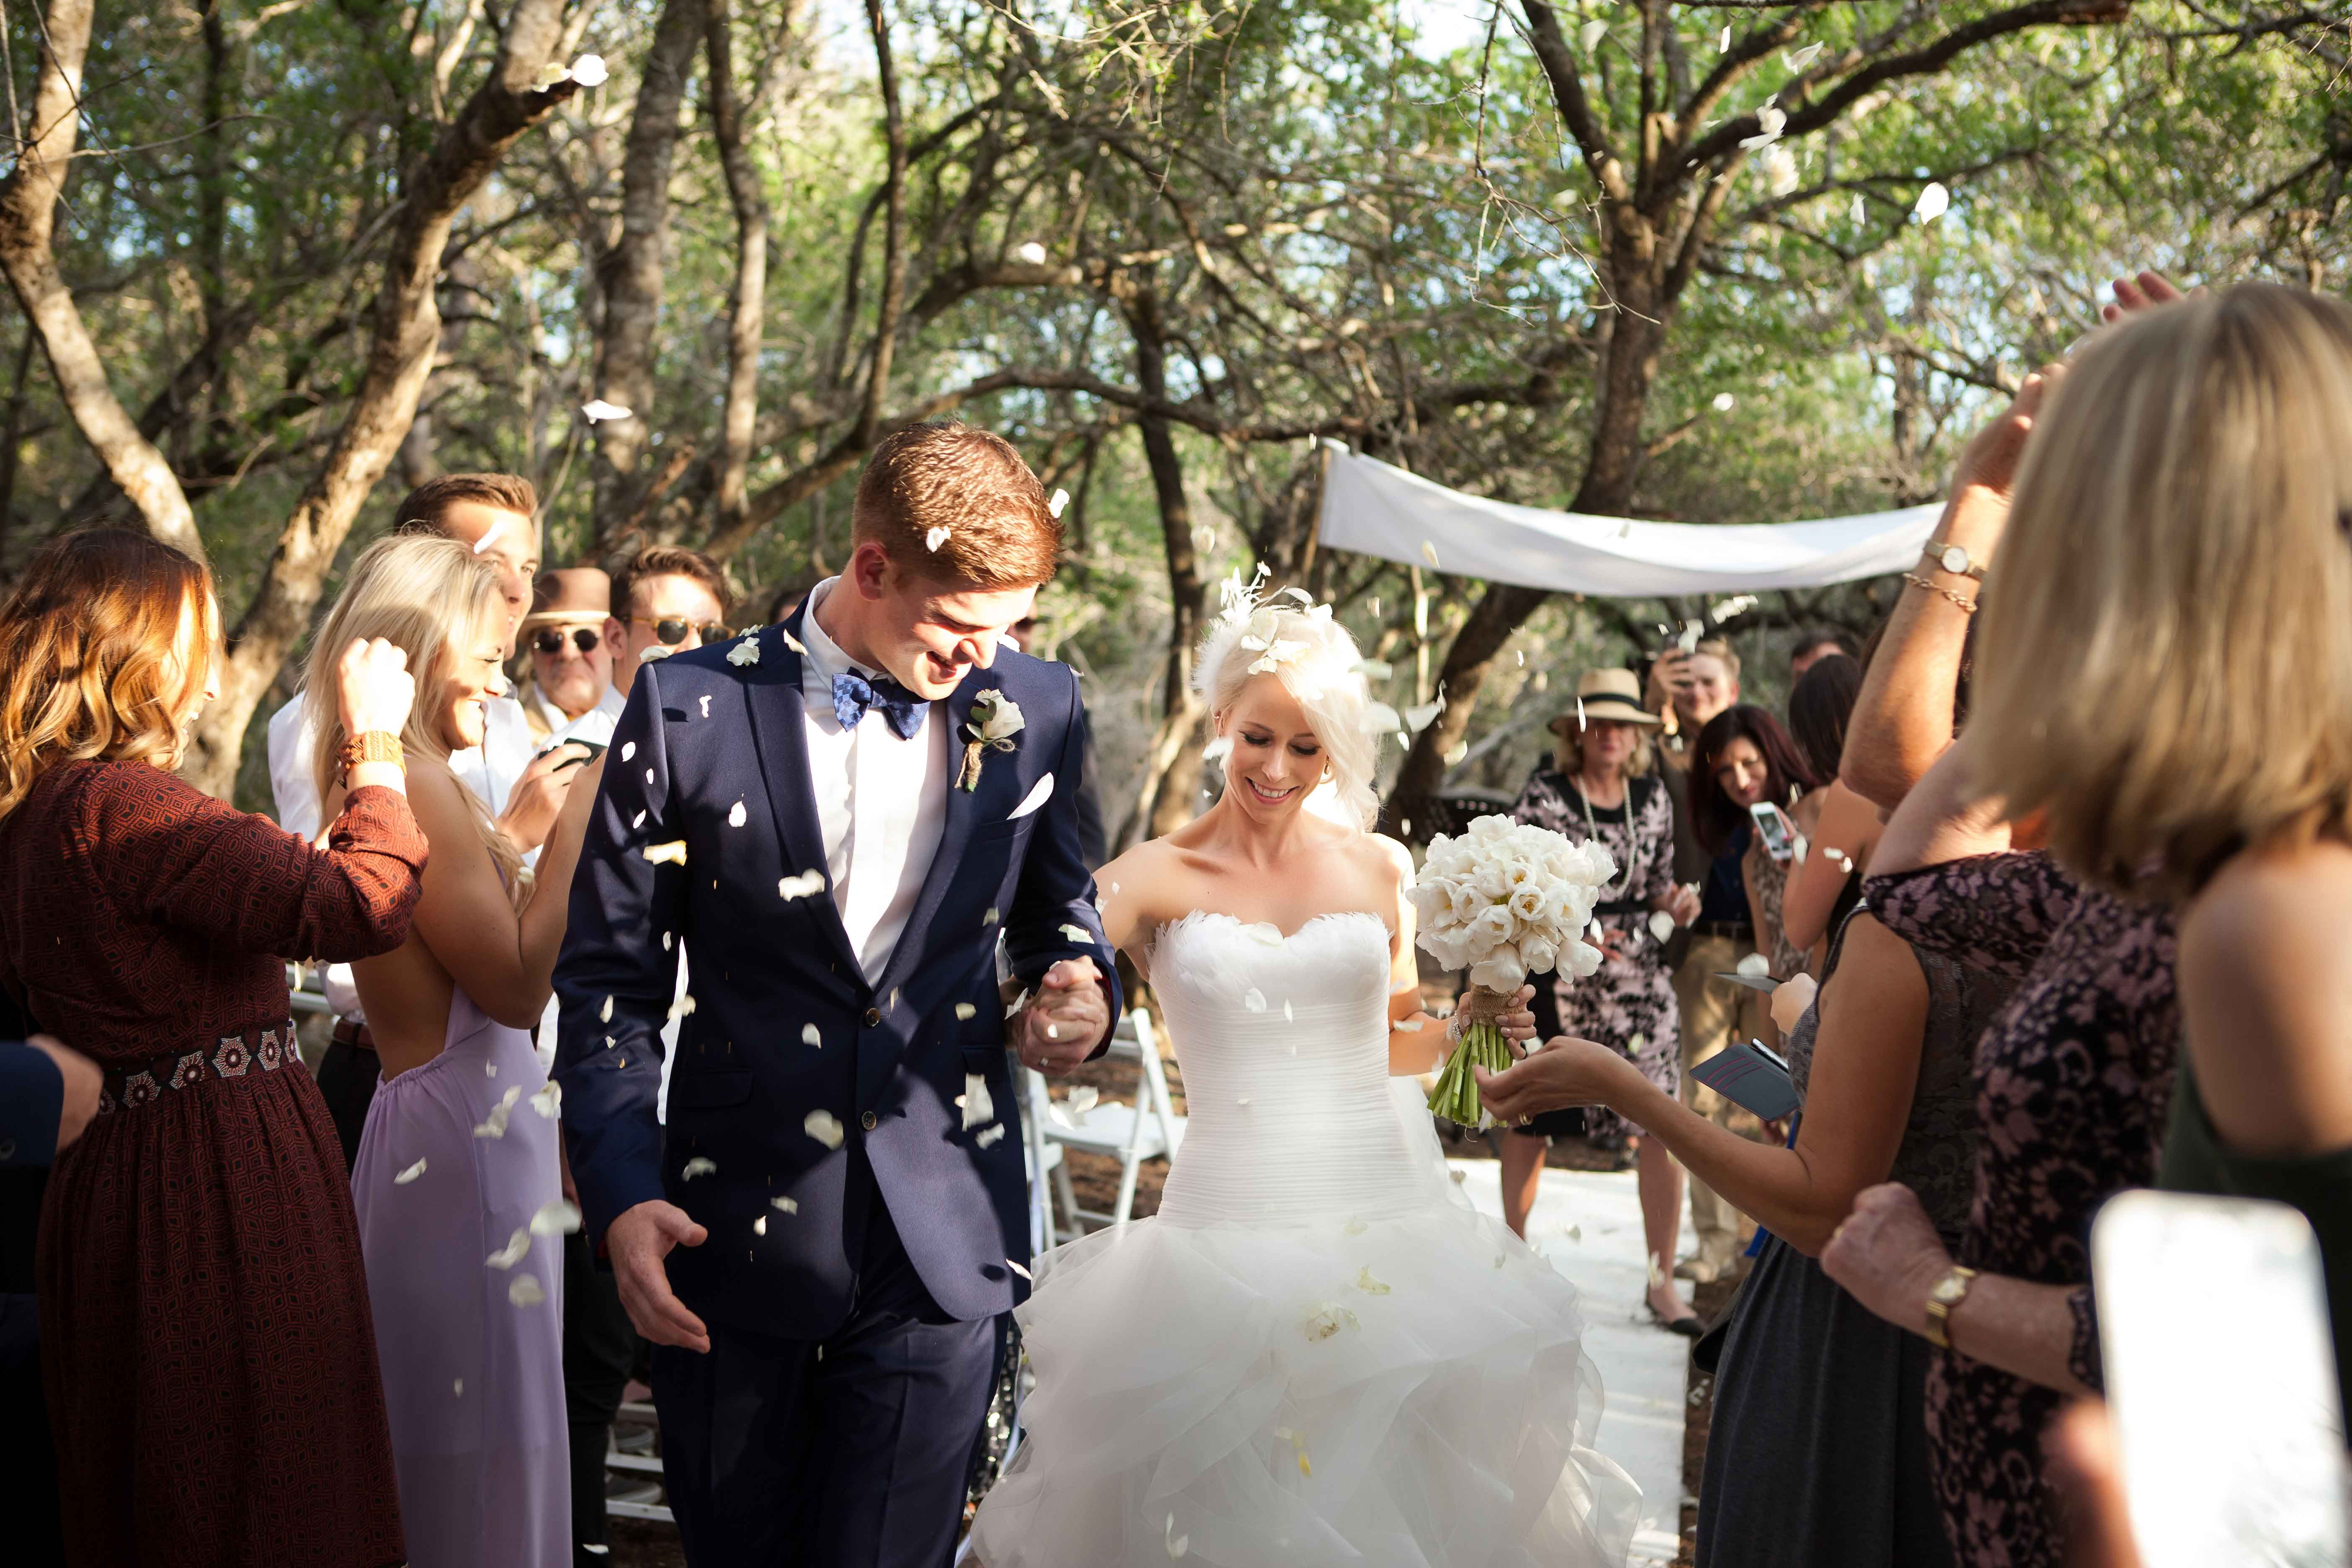 Flower petal toss at South Africa outdoor wedding ceremony